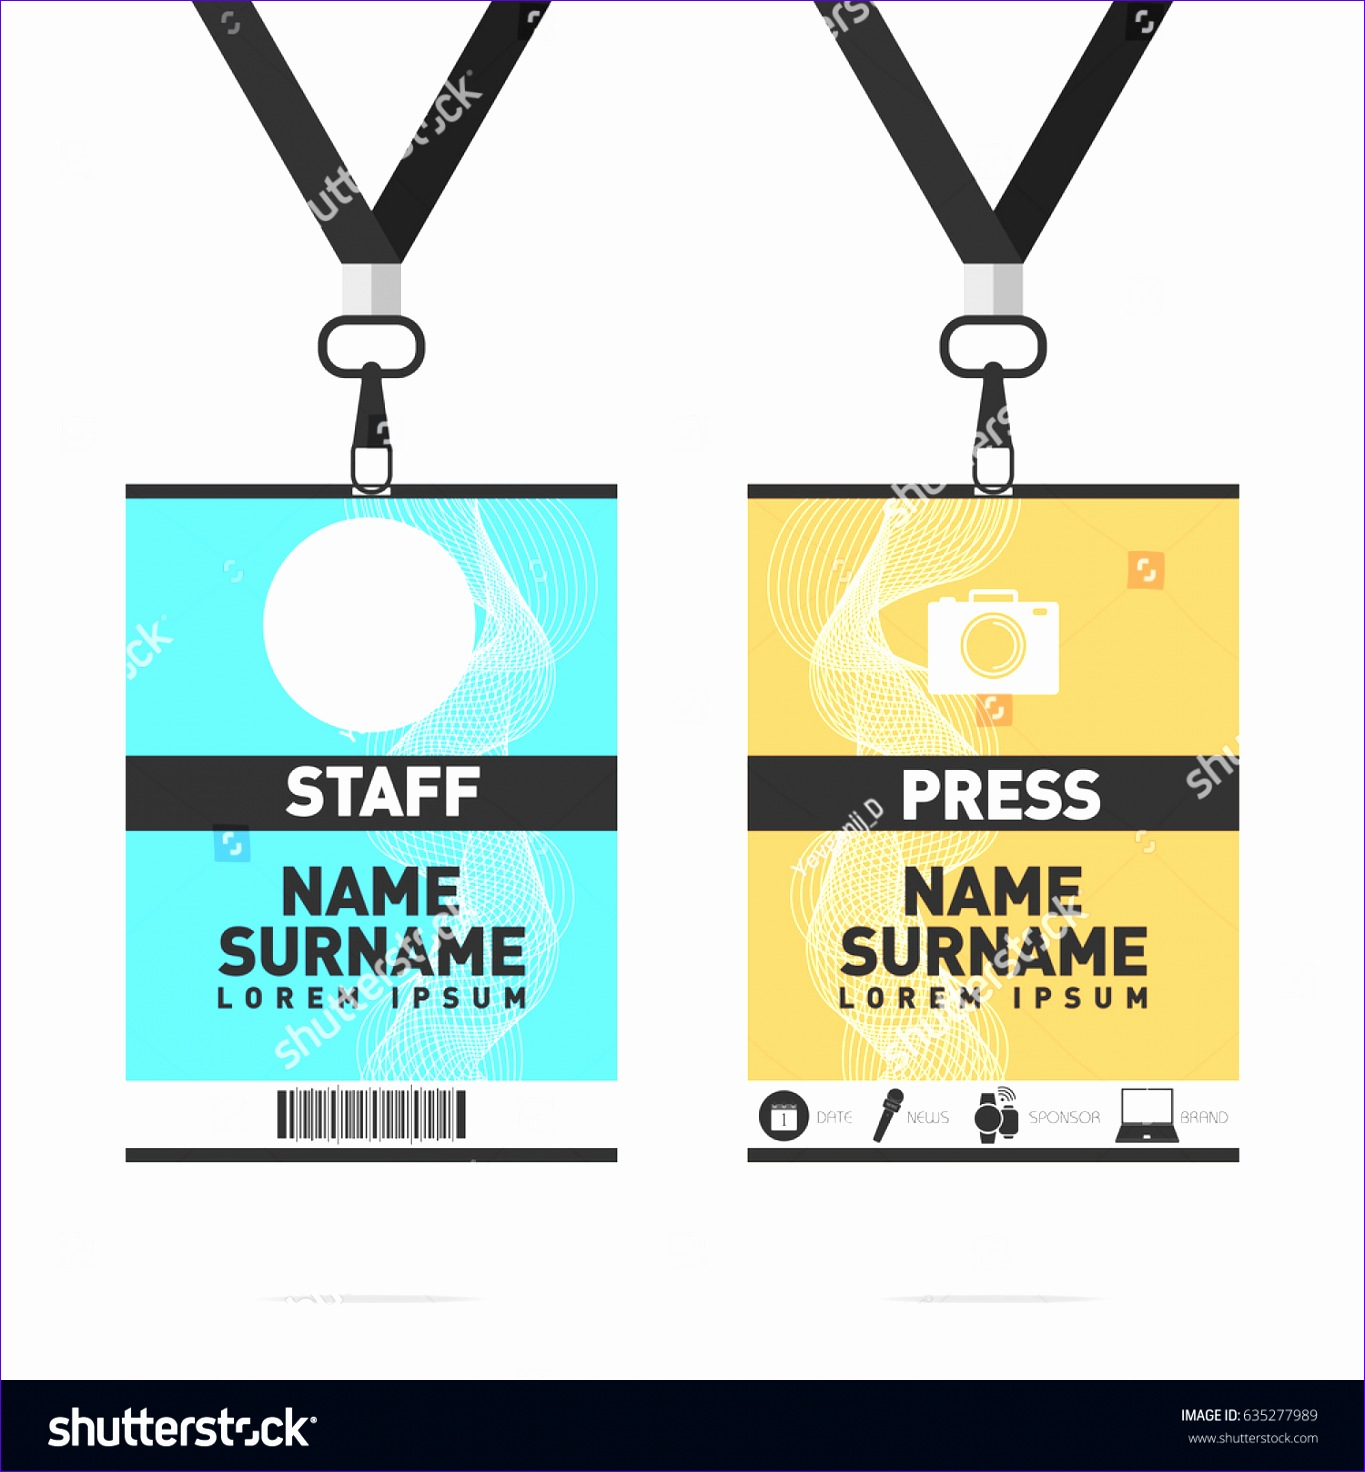 stock vector event staff and press id cards set with lanyards vector design for badge holder templates